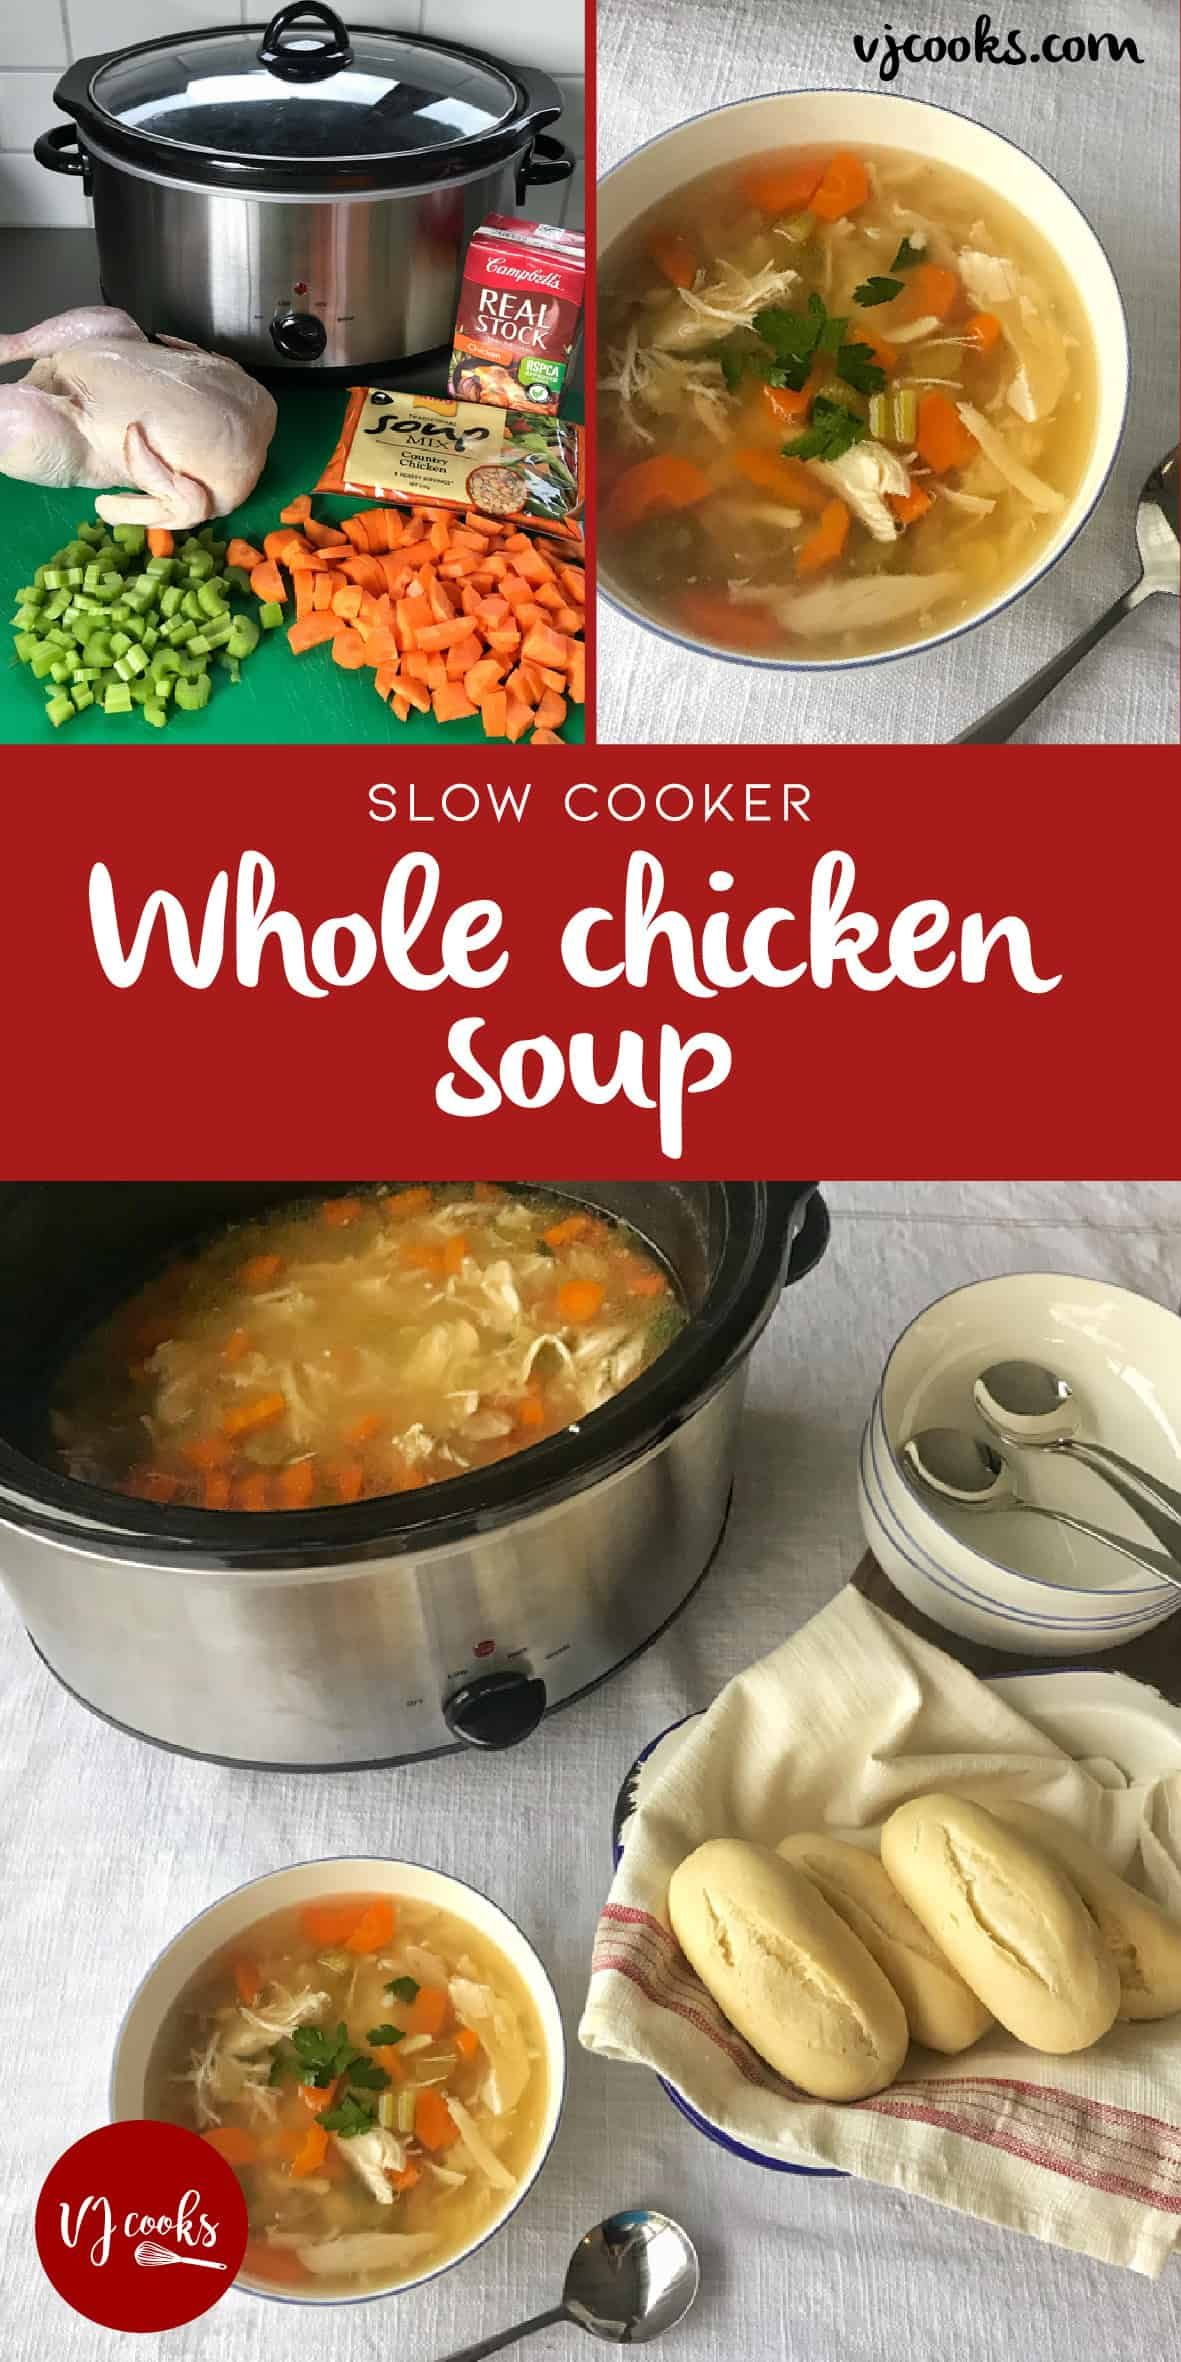 Easy Slow Cooker Whole Chicken Soup By Vj Cooks Recipe Chicken Soup Slow Cooker Whole Chicken Soup Slow Cooked Meals